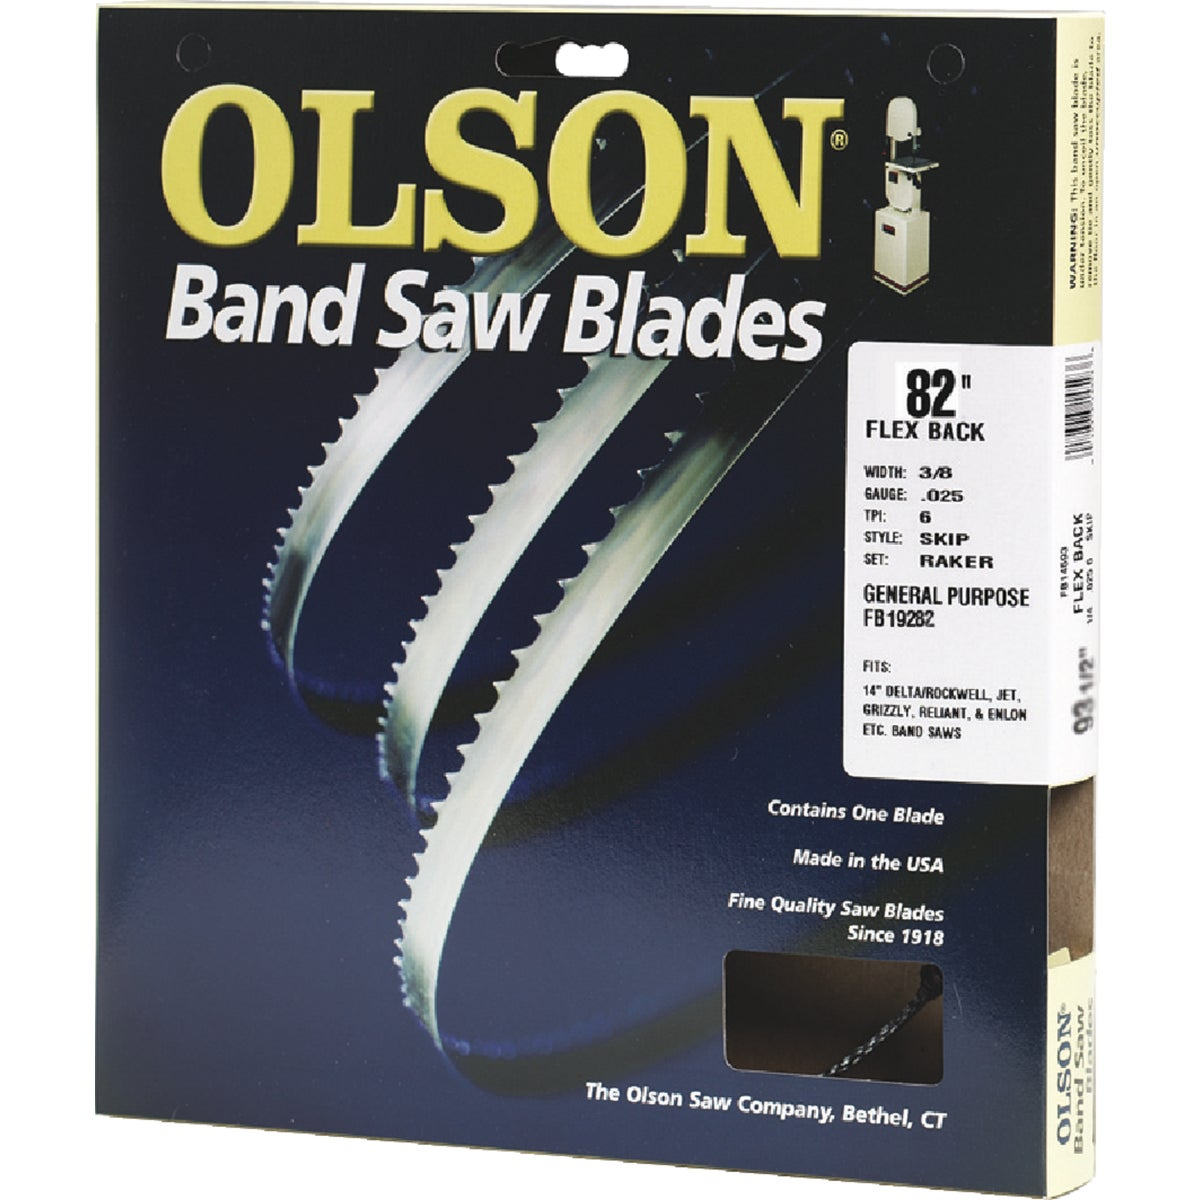 "82"" BANDSAW BLADE - 19282 by Olson Saw Co"